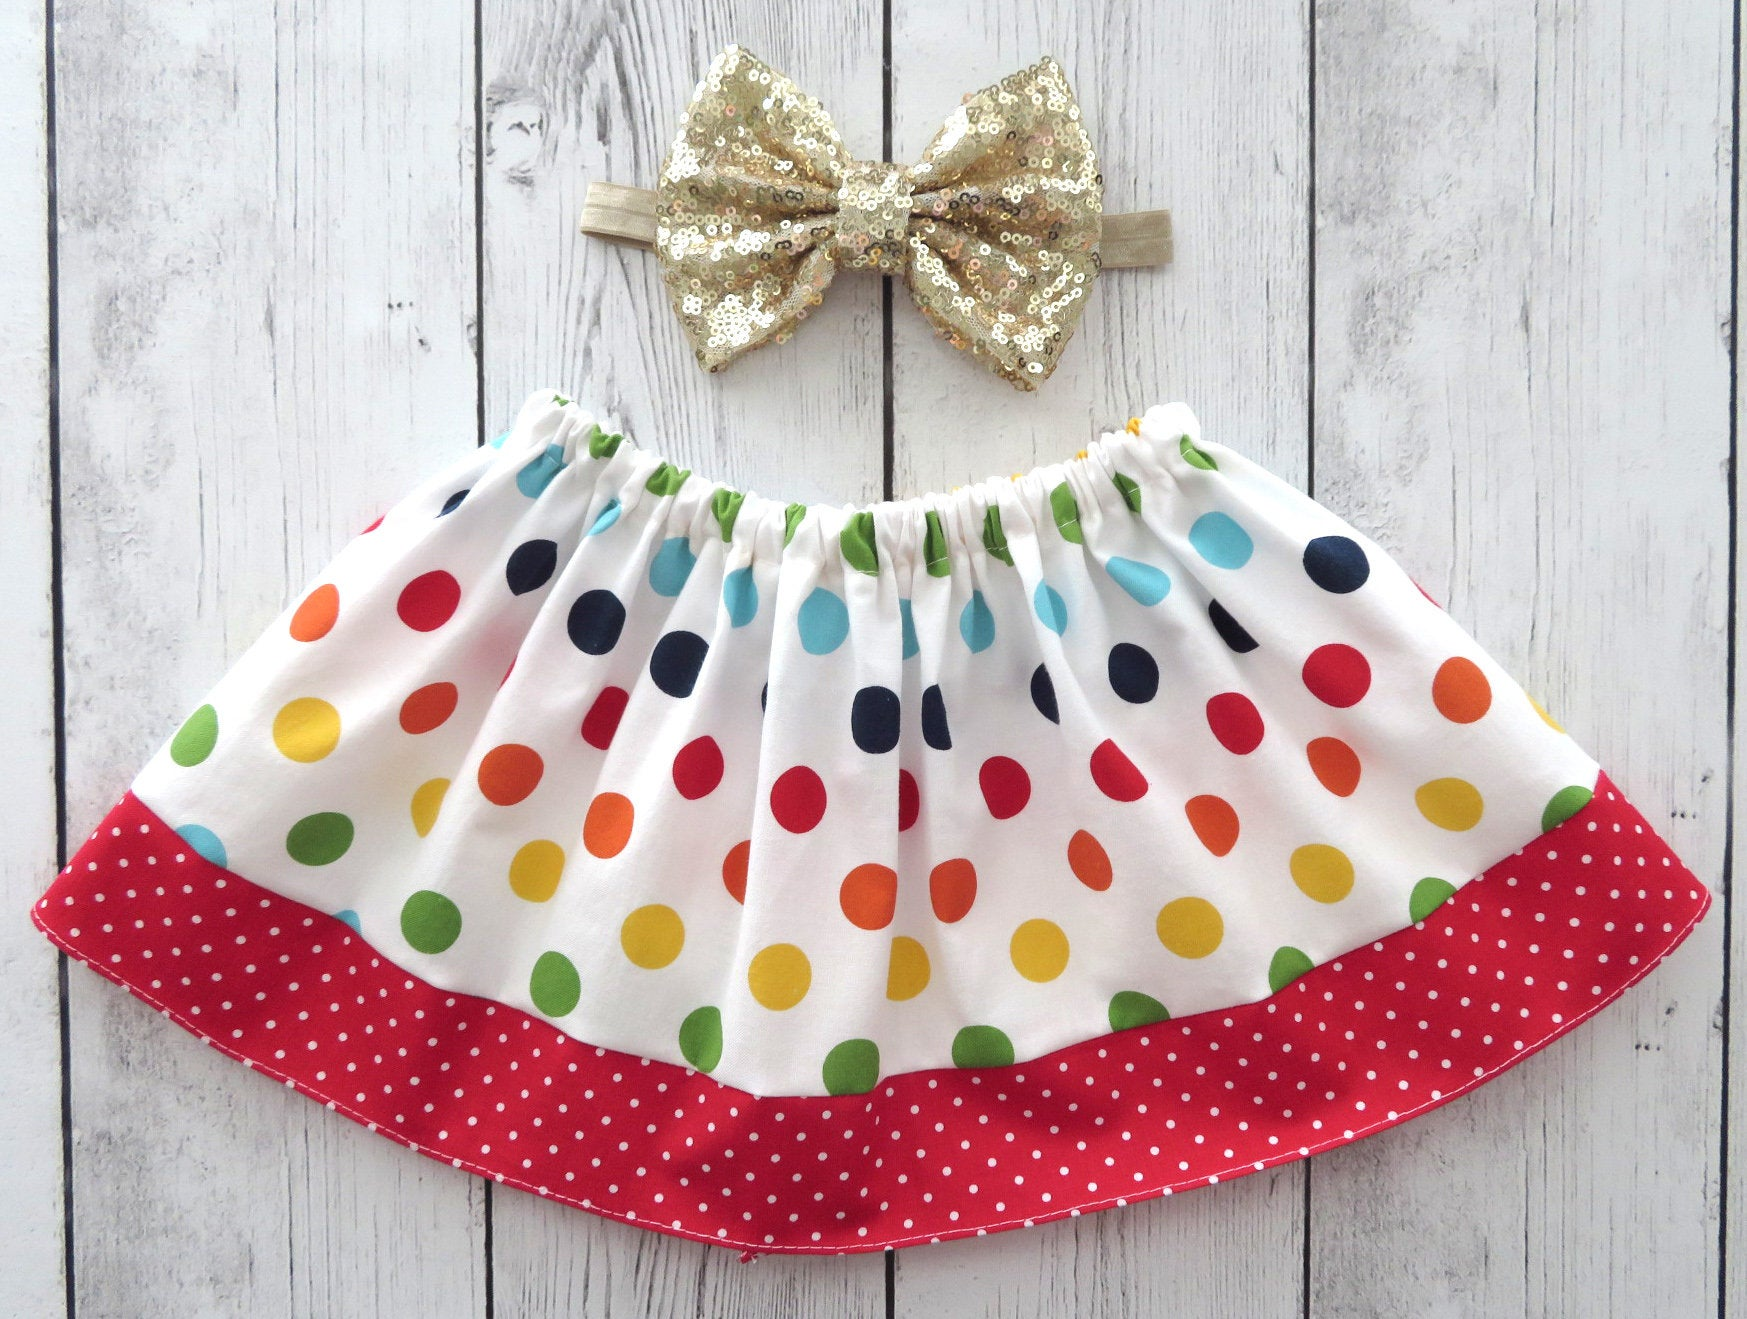 Colorful Polka Dot Skirt for baby girl - red skirt, polka dot skirt, baby girl skirt, baby girl skirts